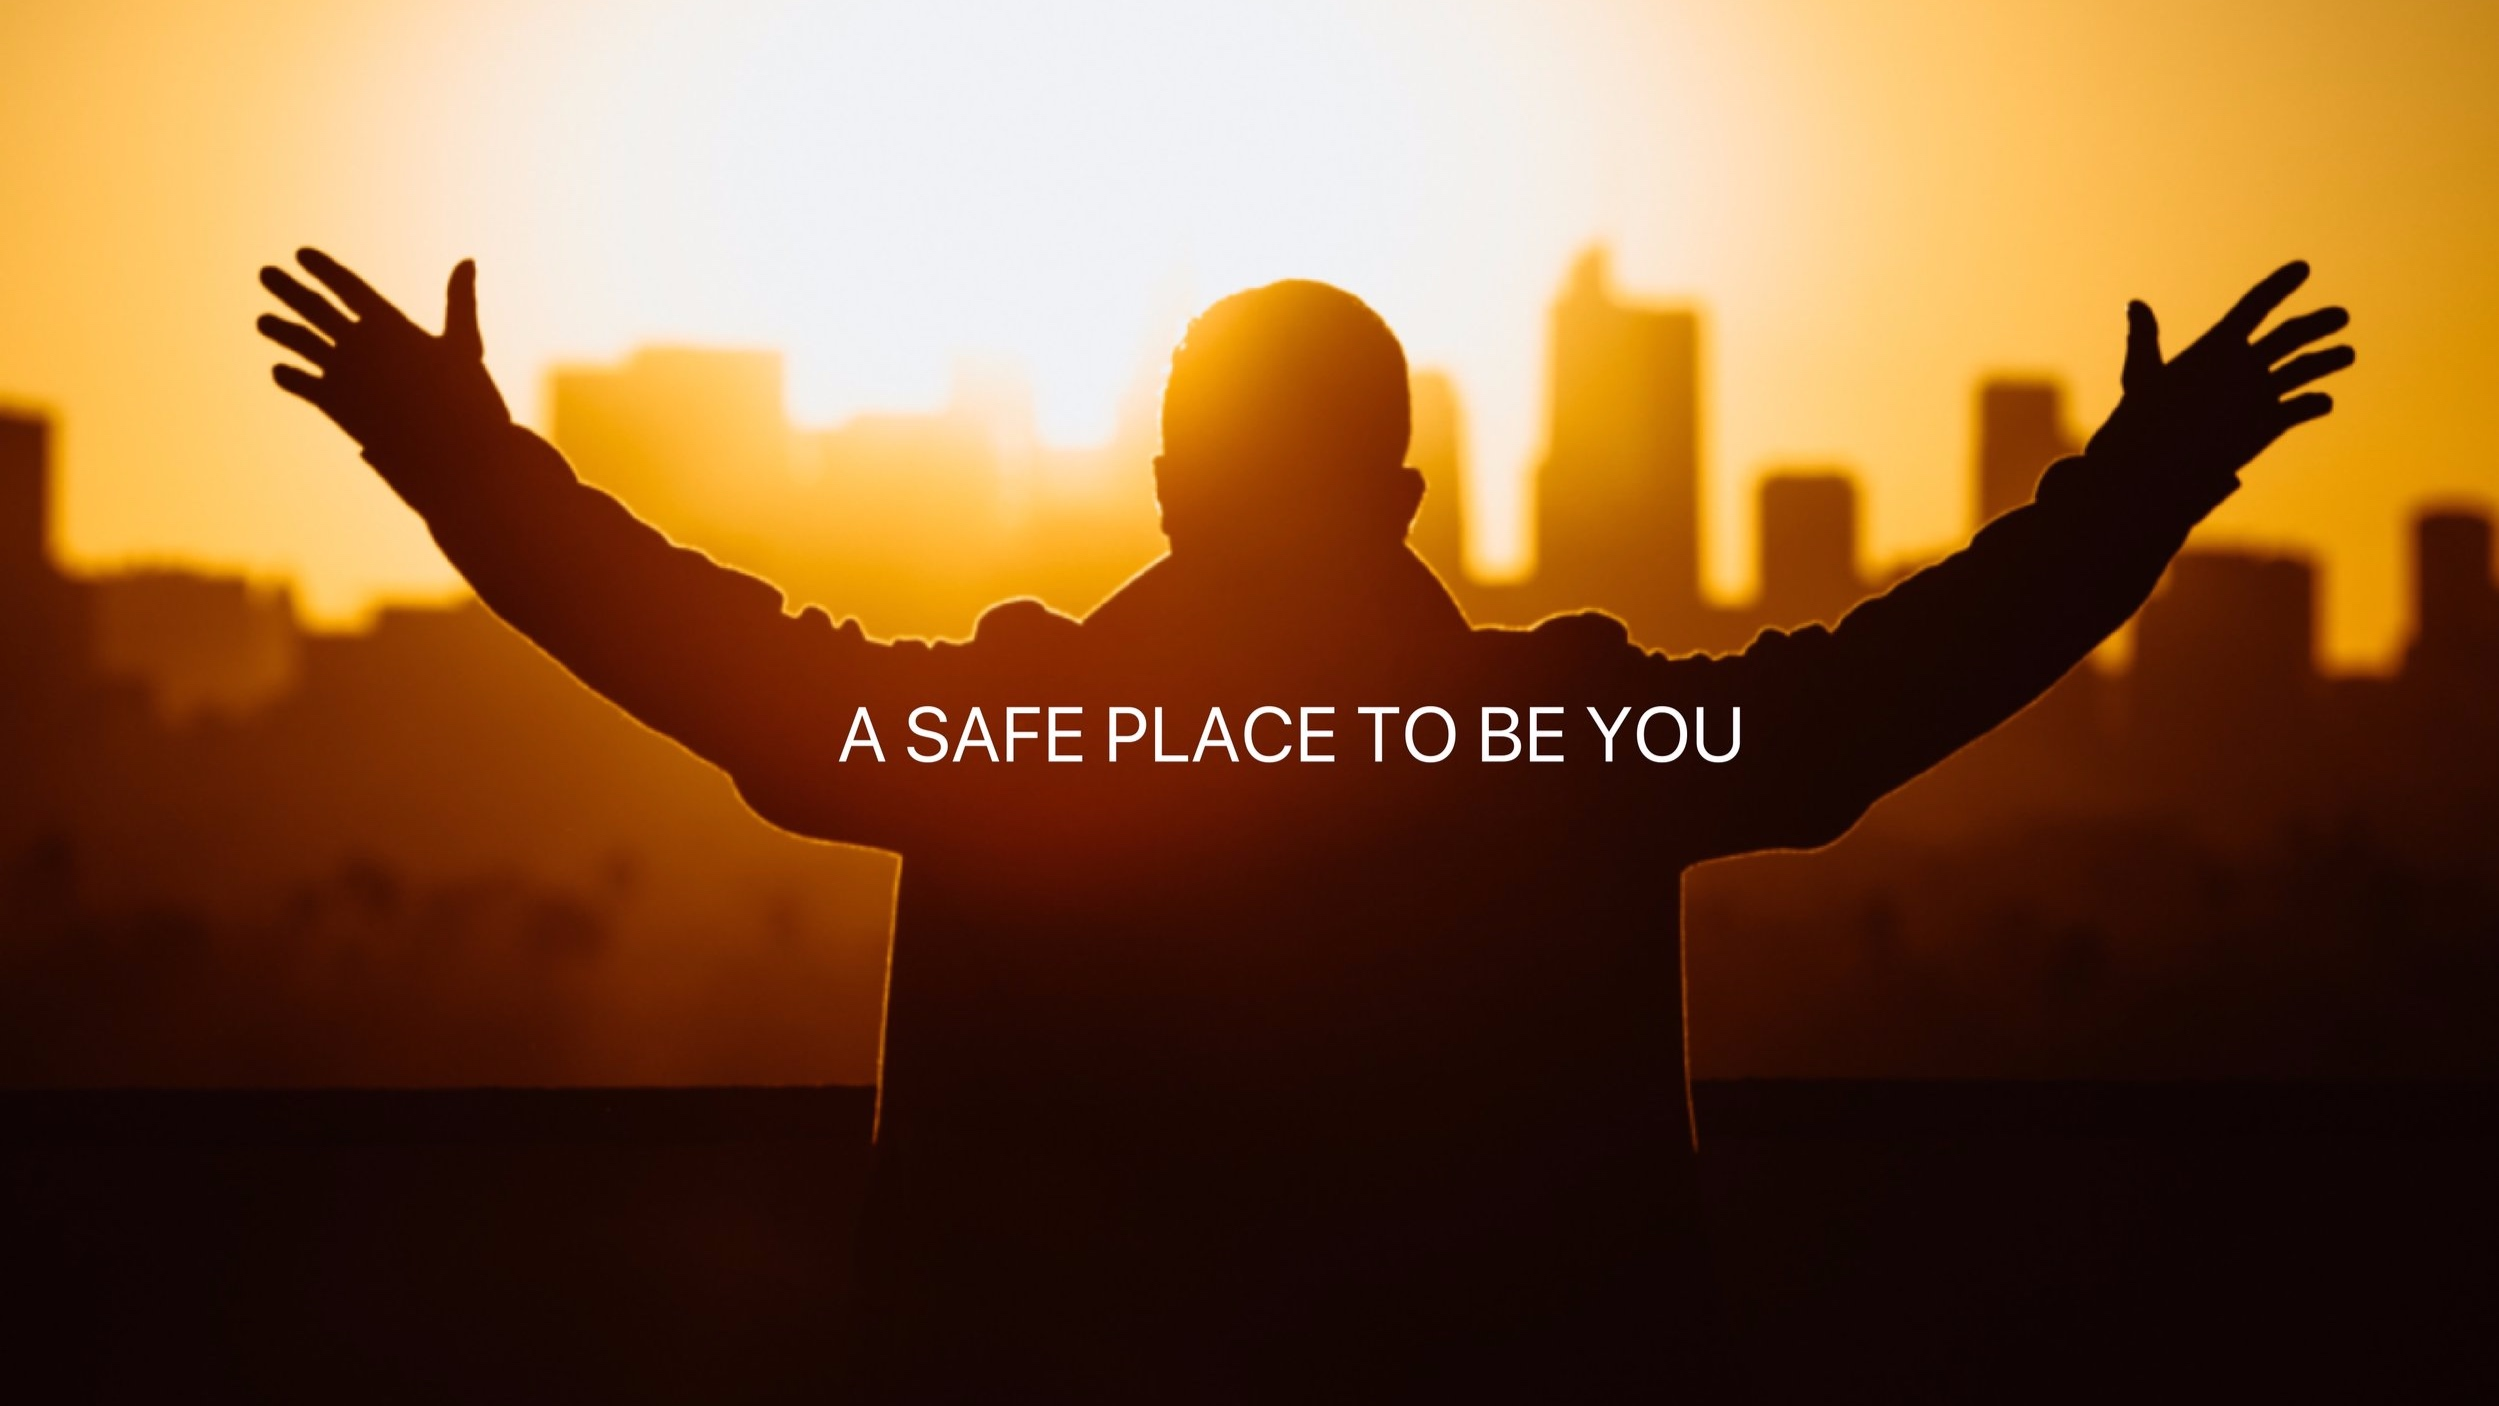 SAFE PLACE TO BE YOU.jpg